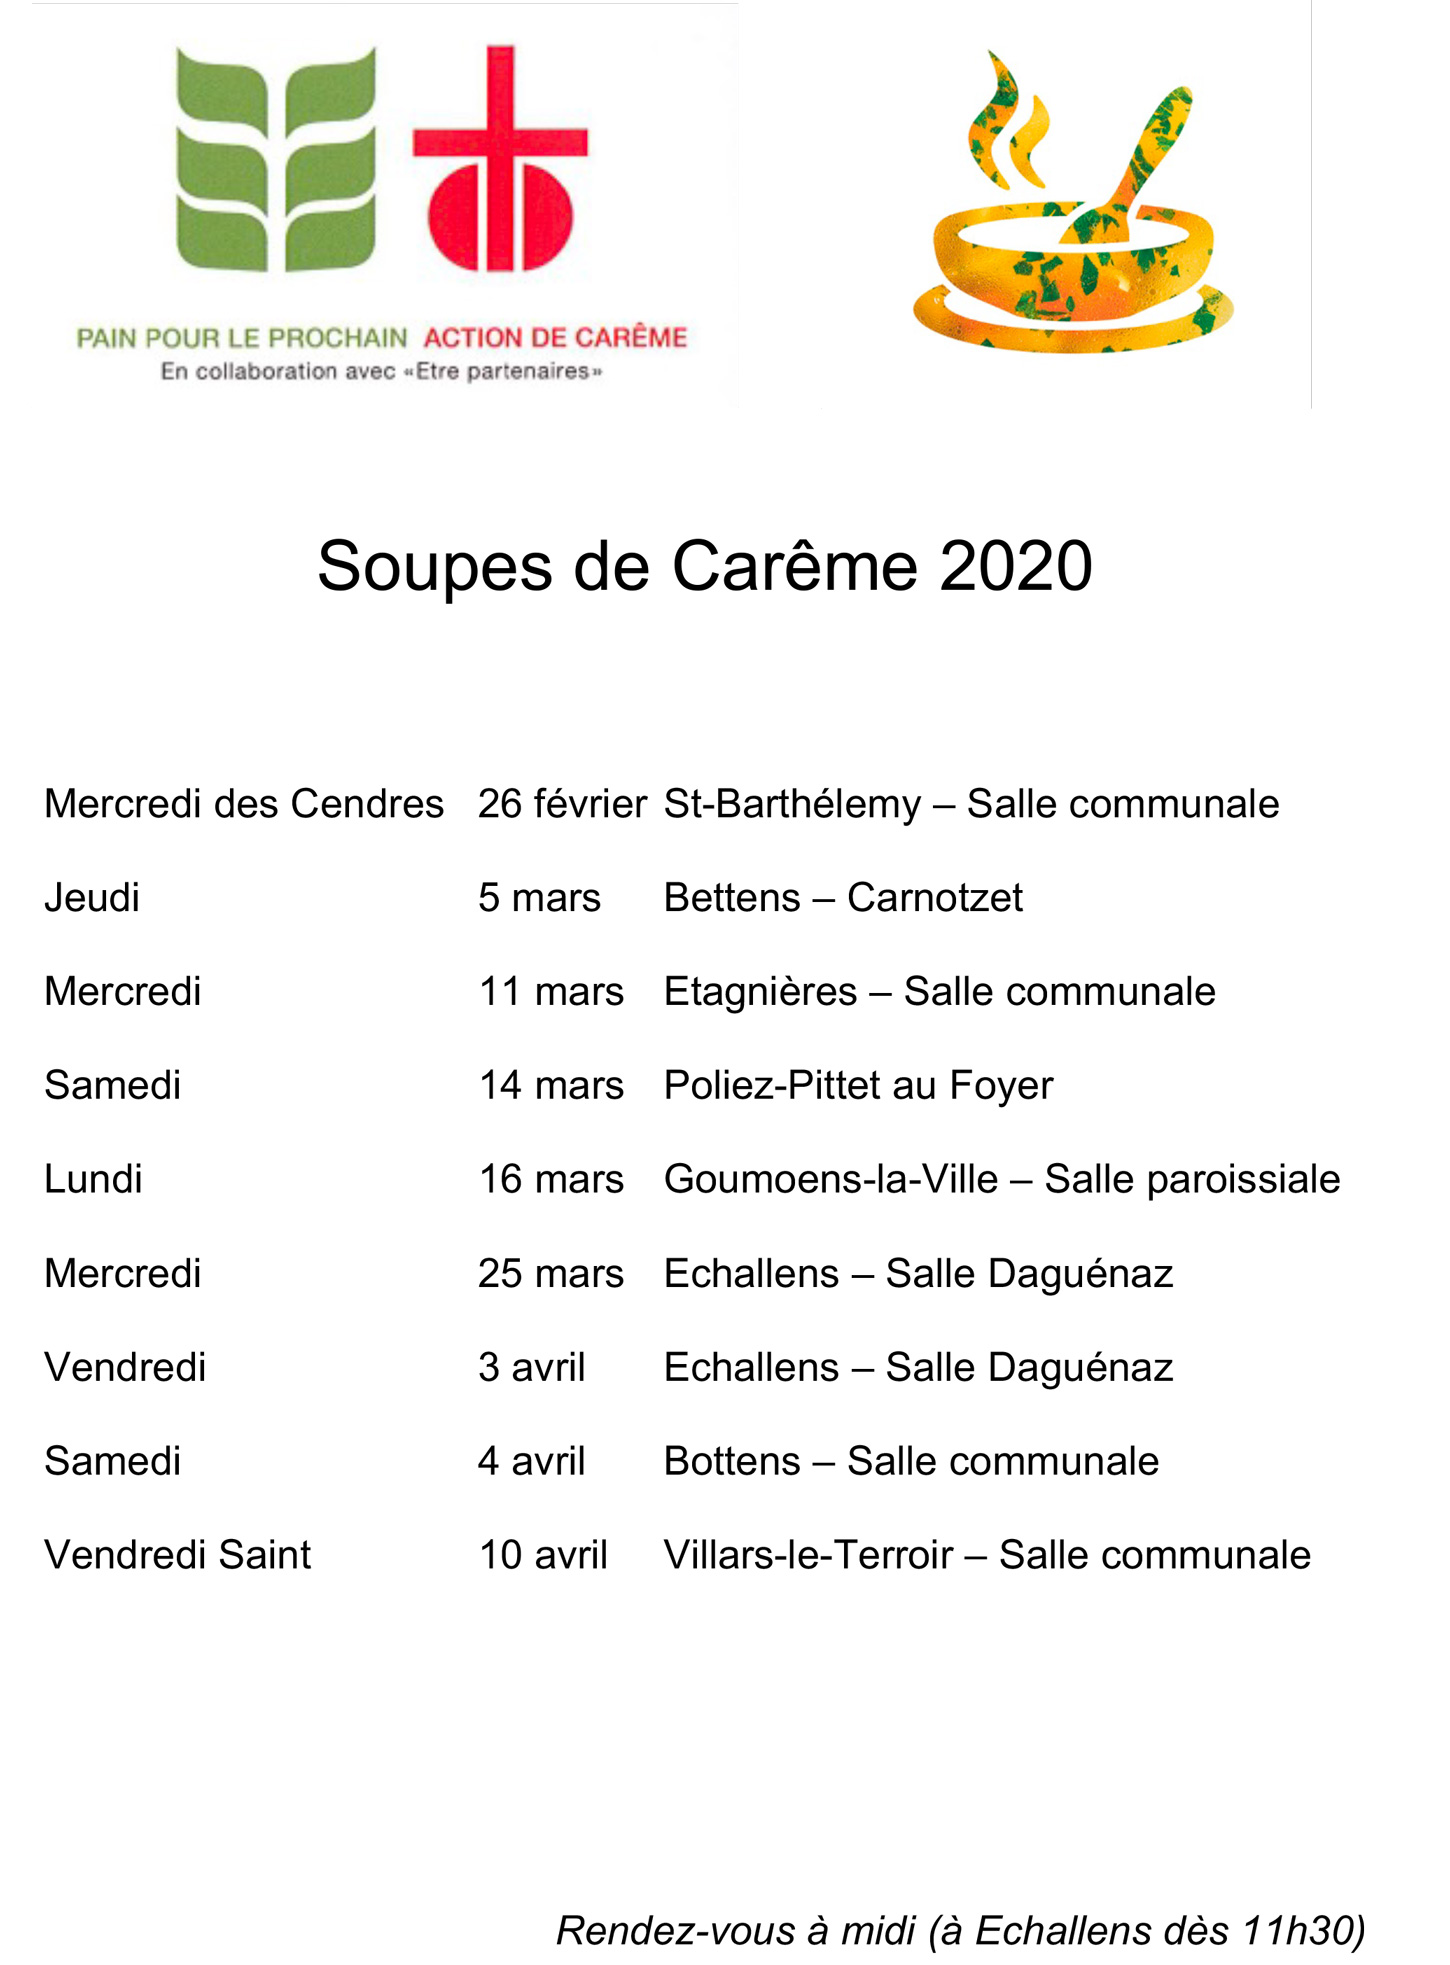 2020 soupes de careme